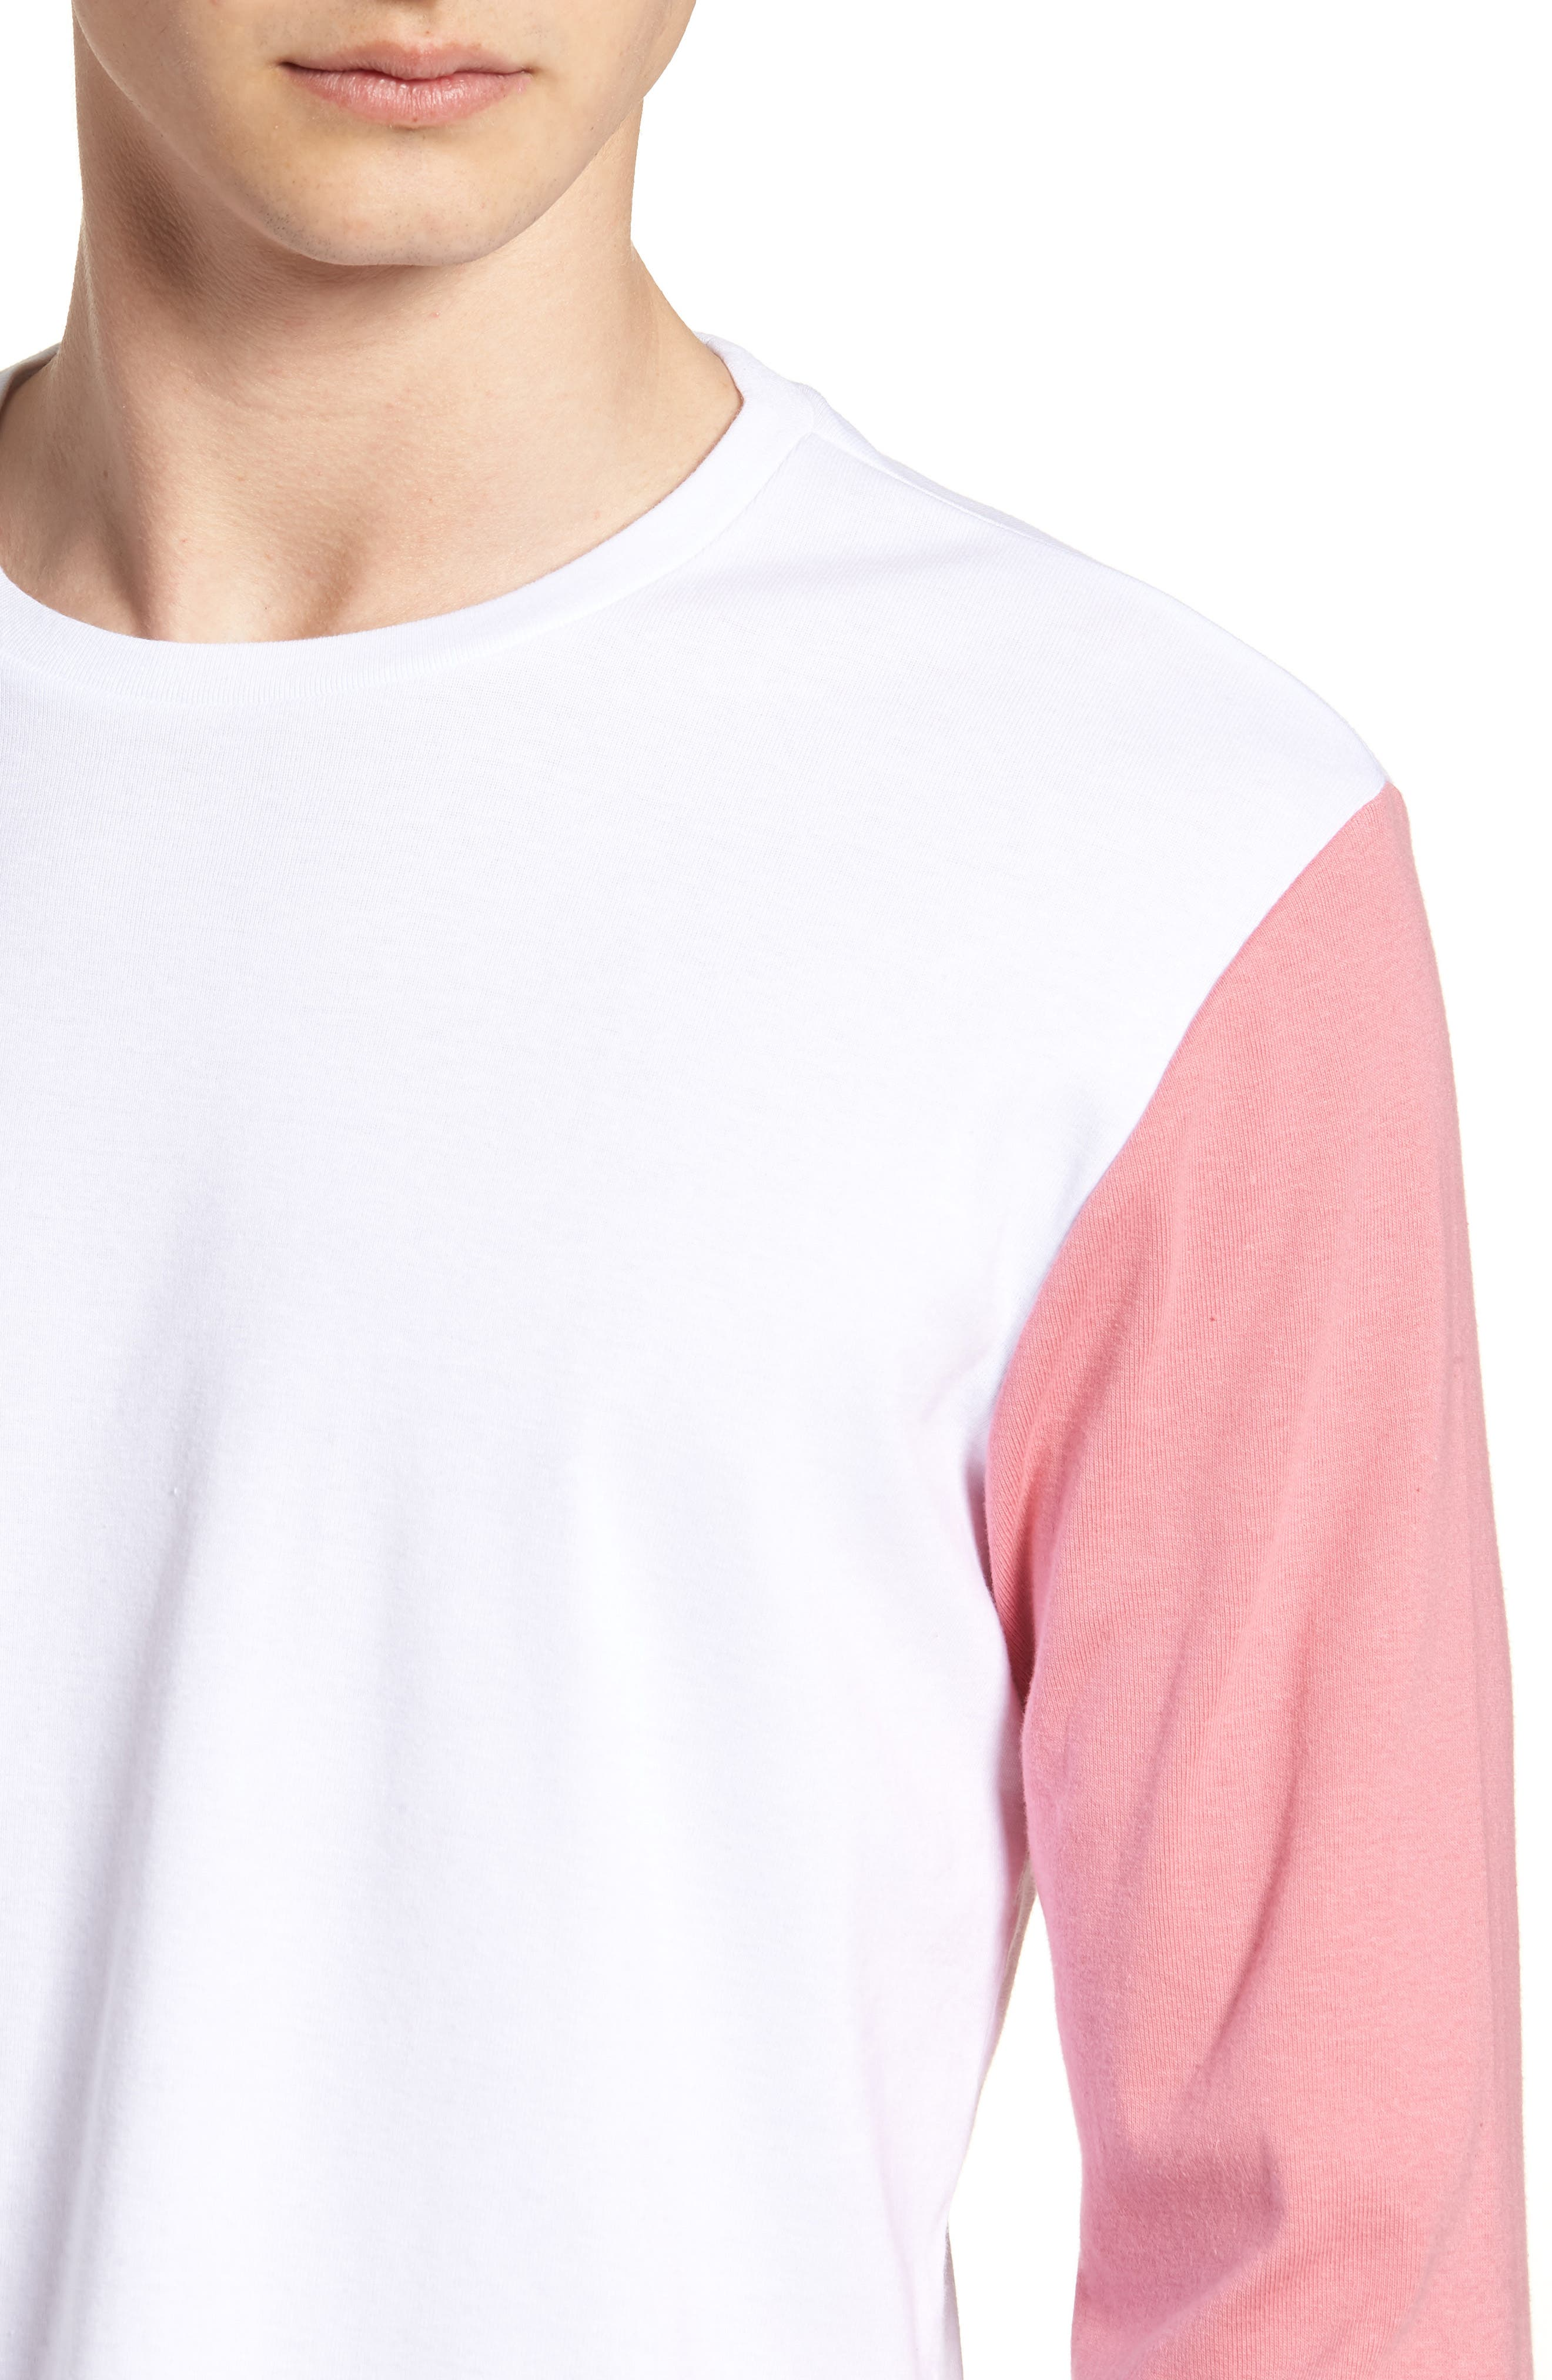 Contrast Sleeve T-Shirt,                             Alternate thumbnail 4, color,                             White/ Pink / Blue